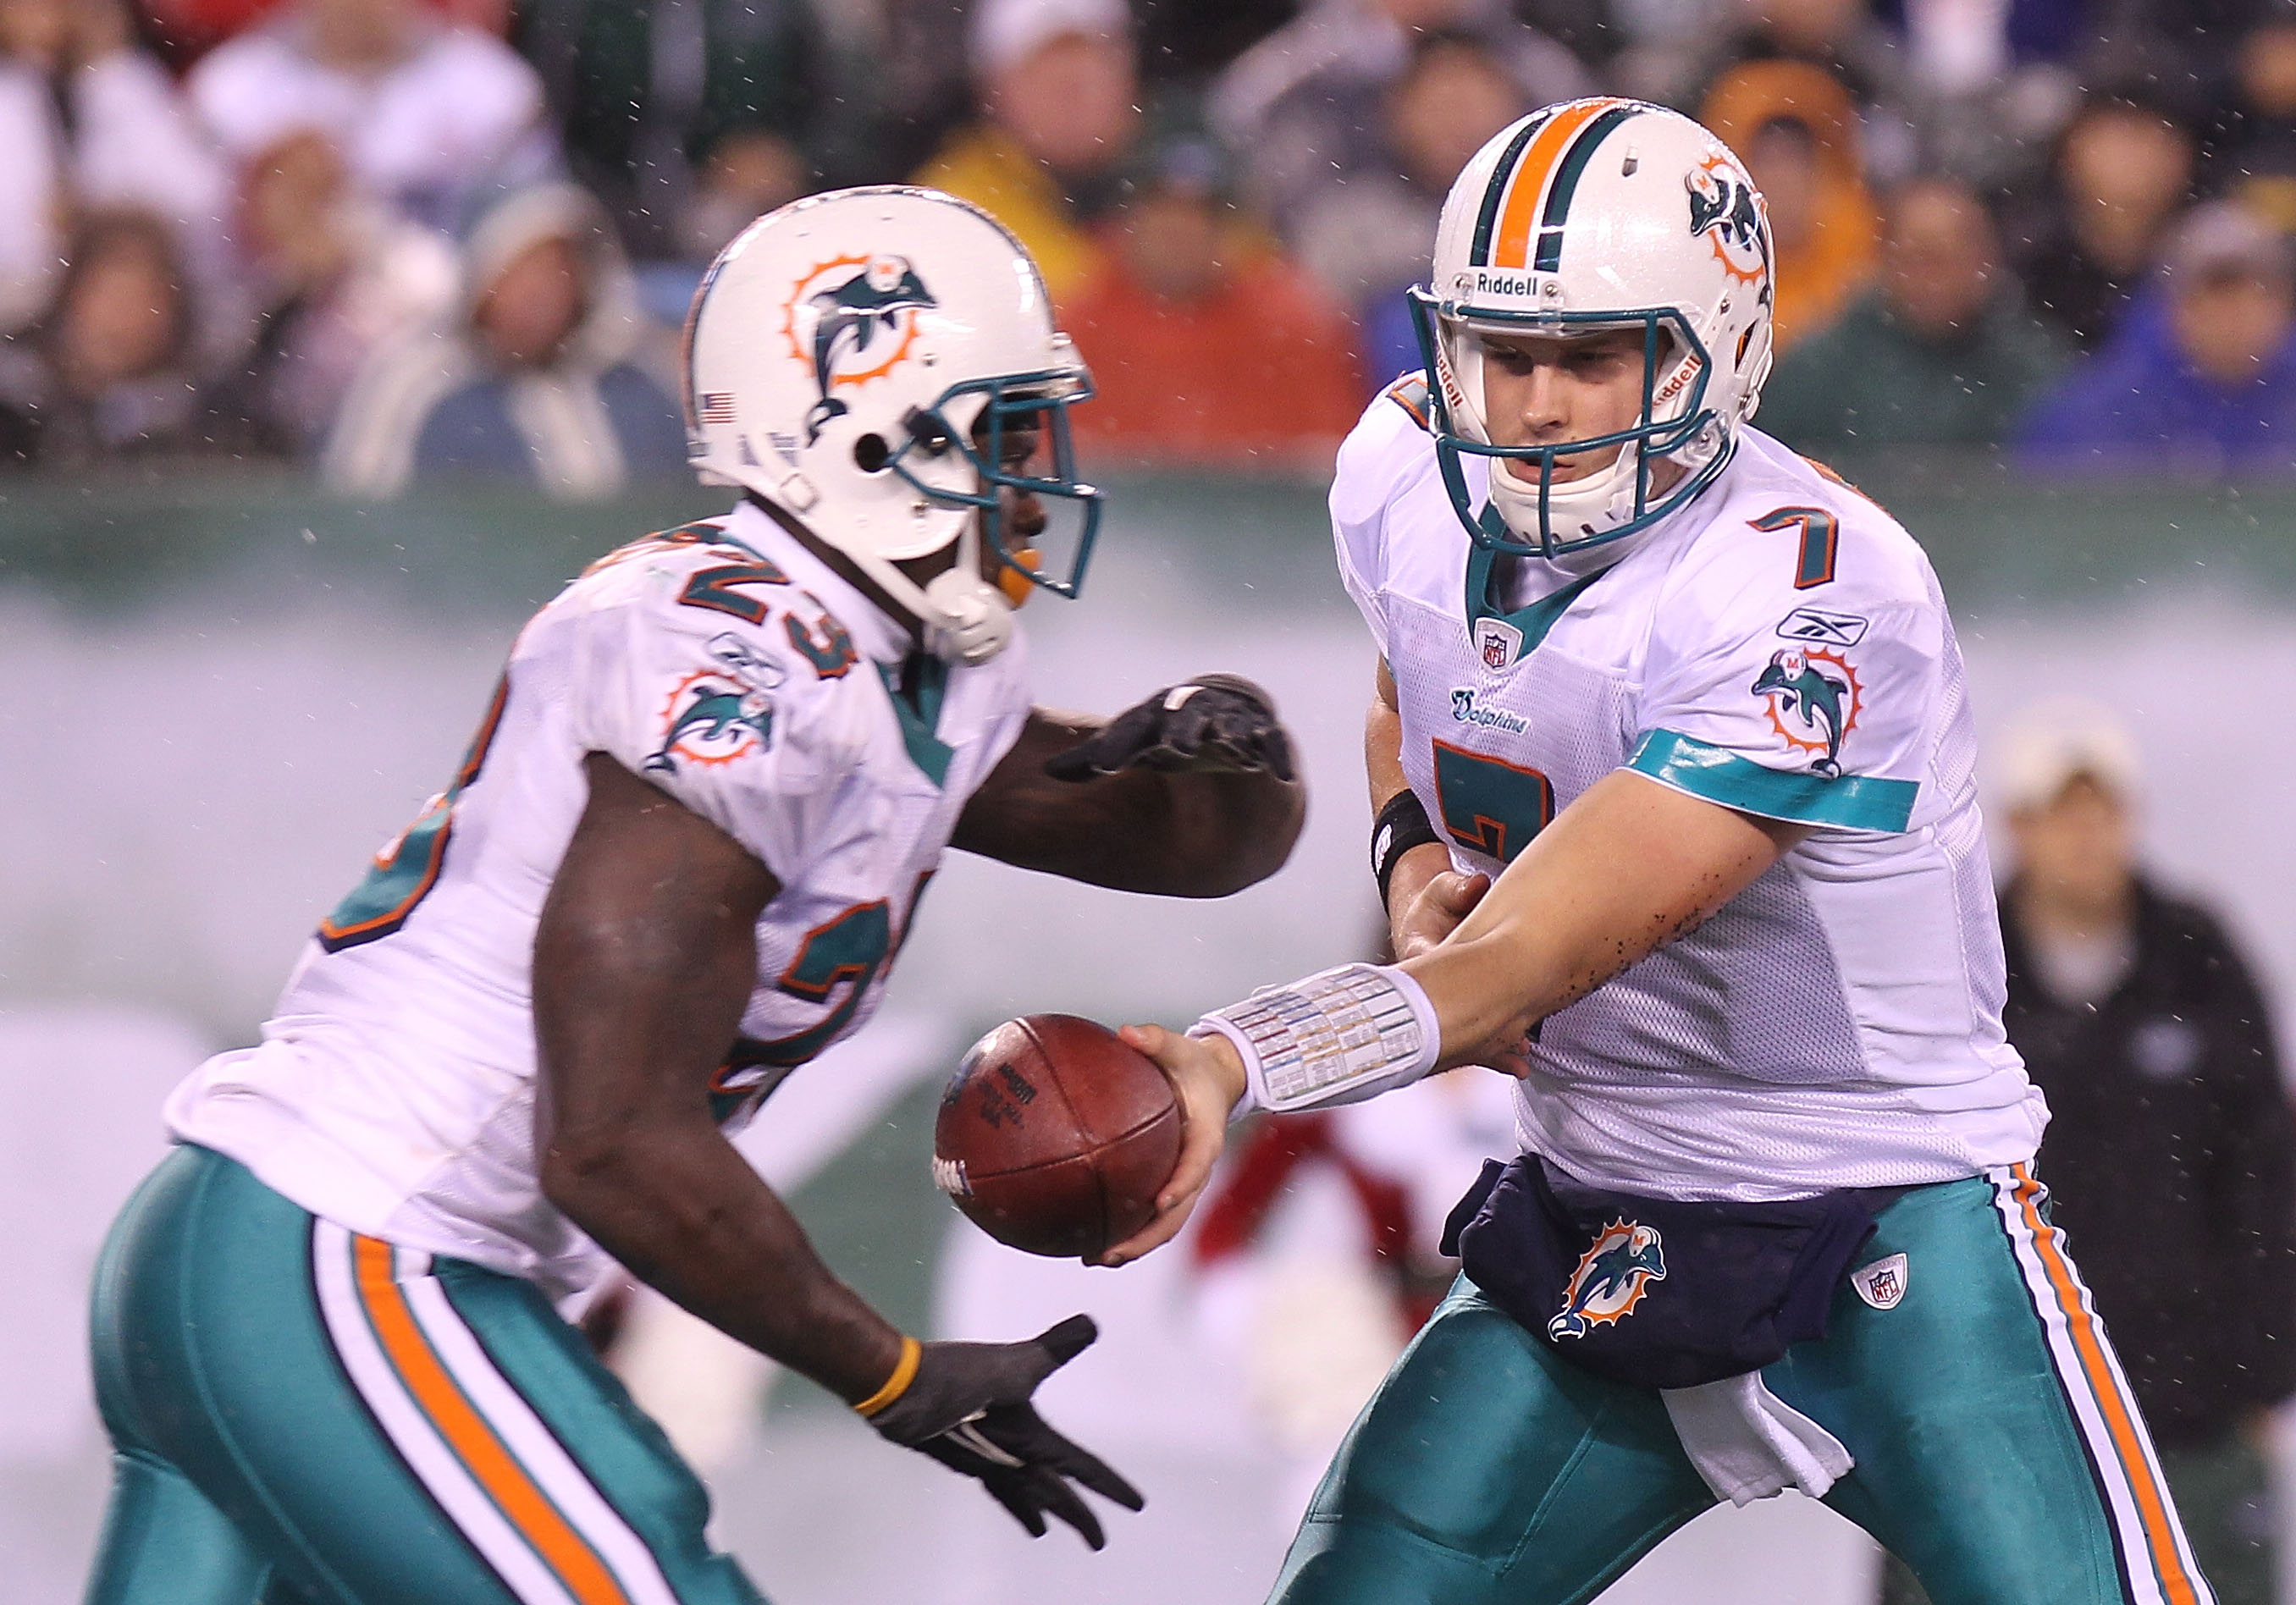 EAST RUTHERFORD, NJ - DECEMBER 12: Chad Henne #7 of the Miami Dolphins hands the ball off to  Ronnie Brown #23 against the New York Jets at New Meadowlands Stadium on December 12, 2010 in East Rutherford, New Jersey.  (Photo by Nick Laham/Getty Images)